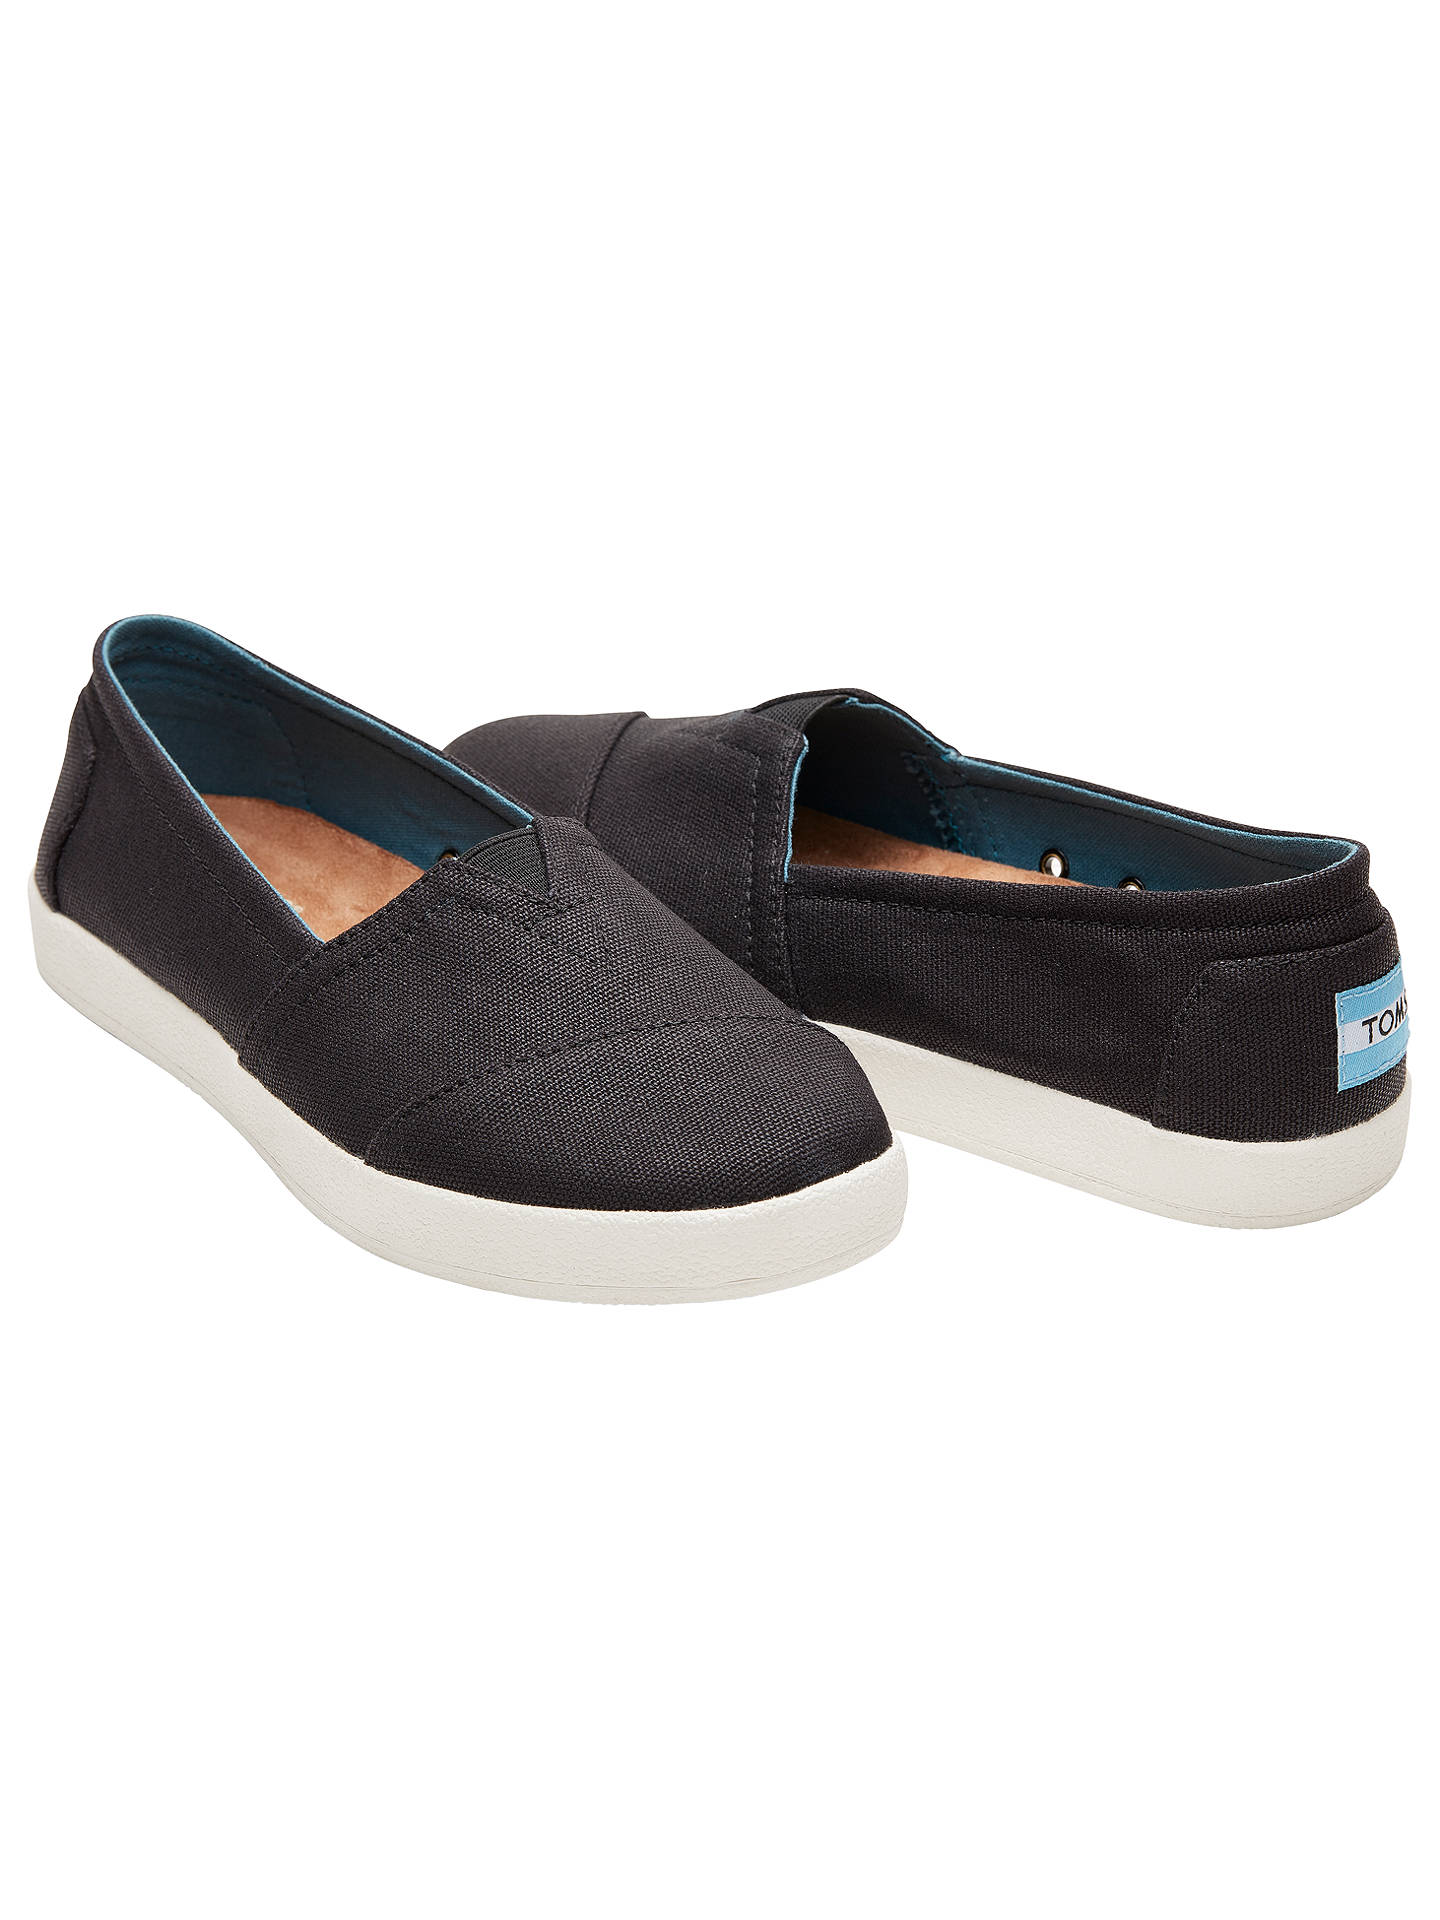 BuyTOMS Avalon Slip On Plimsolls, Black, 3 Online at johnlewis.com